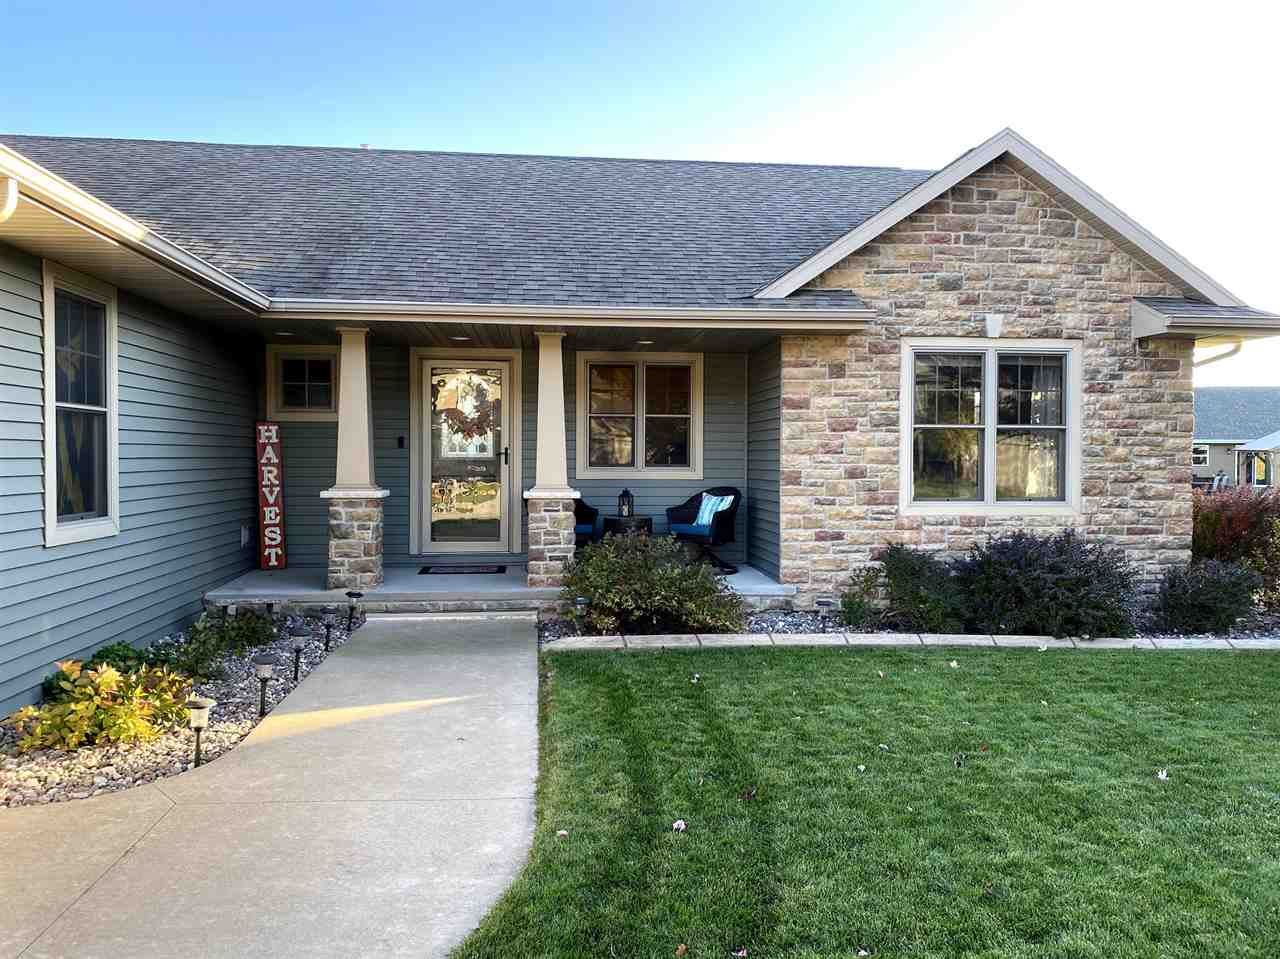 Photo of W4841 GUERNSEY Drive, SHERWOOD, WI 54169 (MLS # 50231398)